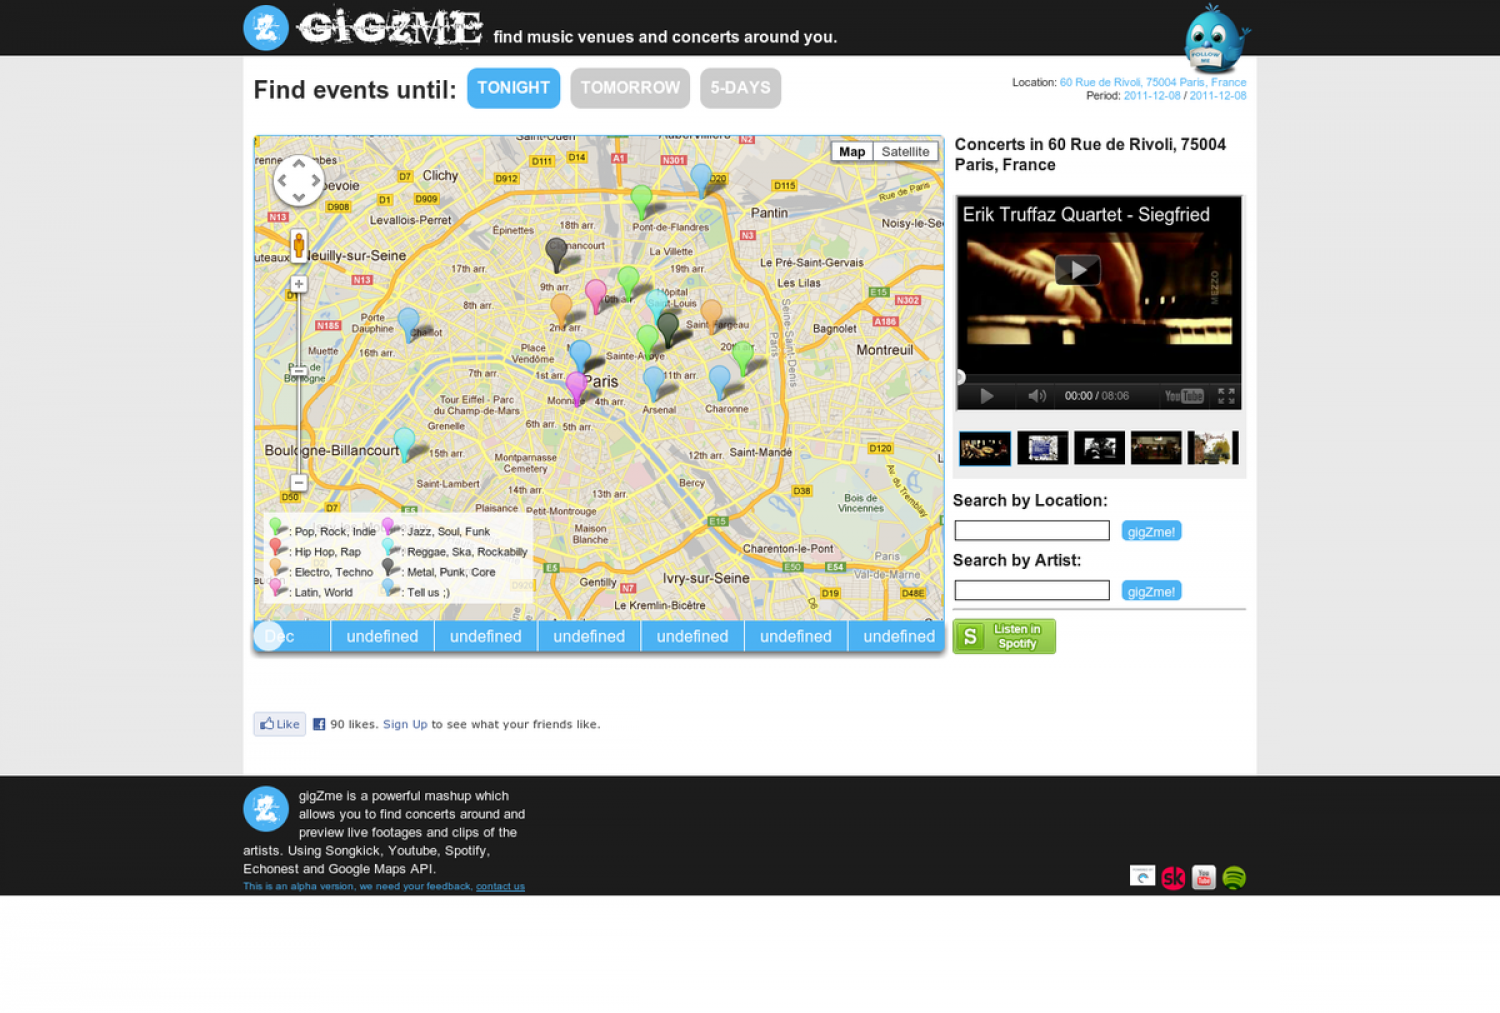 Gigzme - Find gigs around you Infographic